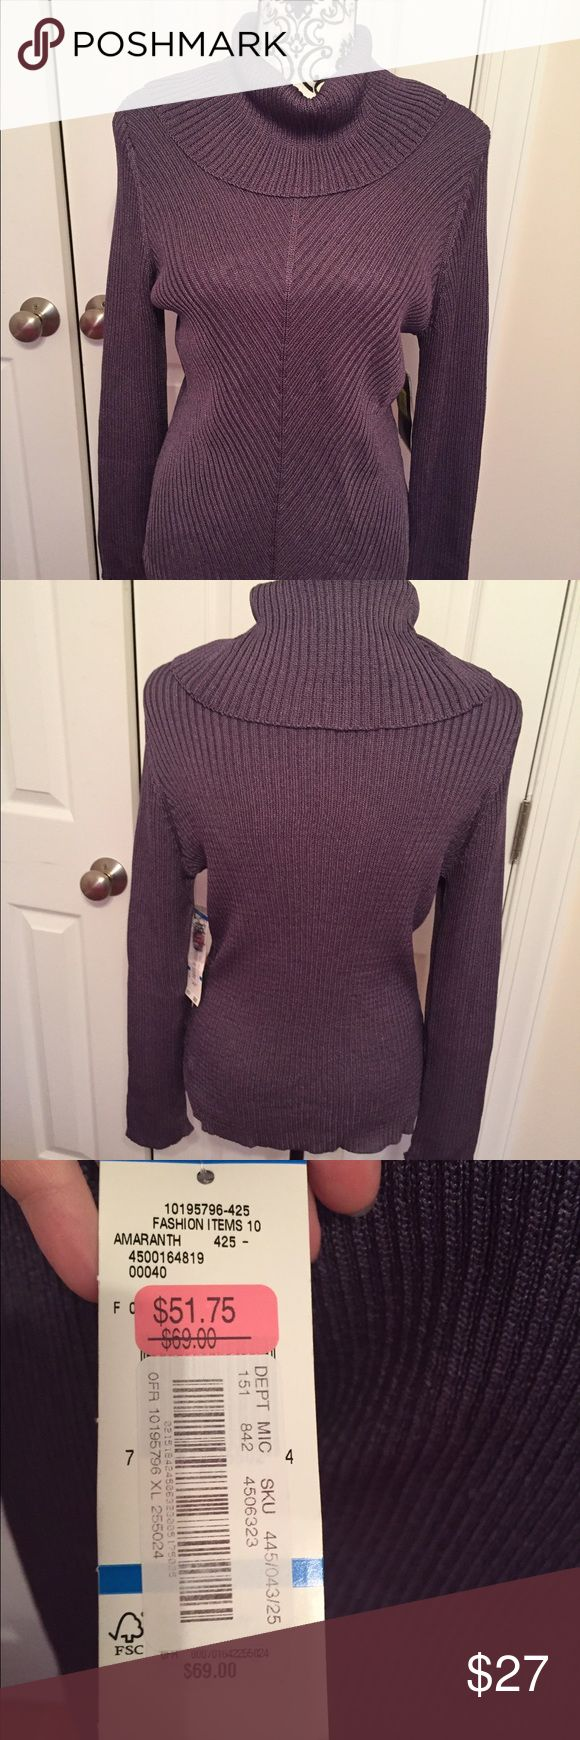 Jones New York Purple Turtle/Cowl Neck Sweater Jones New York Purple turtle neck/ cowl neck sweater NWT $69 regular price 60% Rayon 40% Nylon Very soft Measures 24 inches from the shoulder seam to bottom of Sweater Jones New York Sweaters Cowl & Turtlenecks